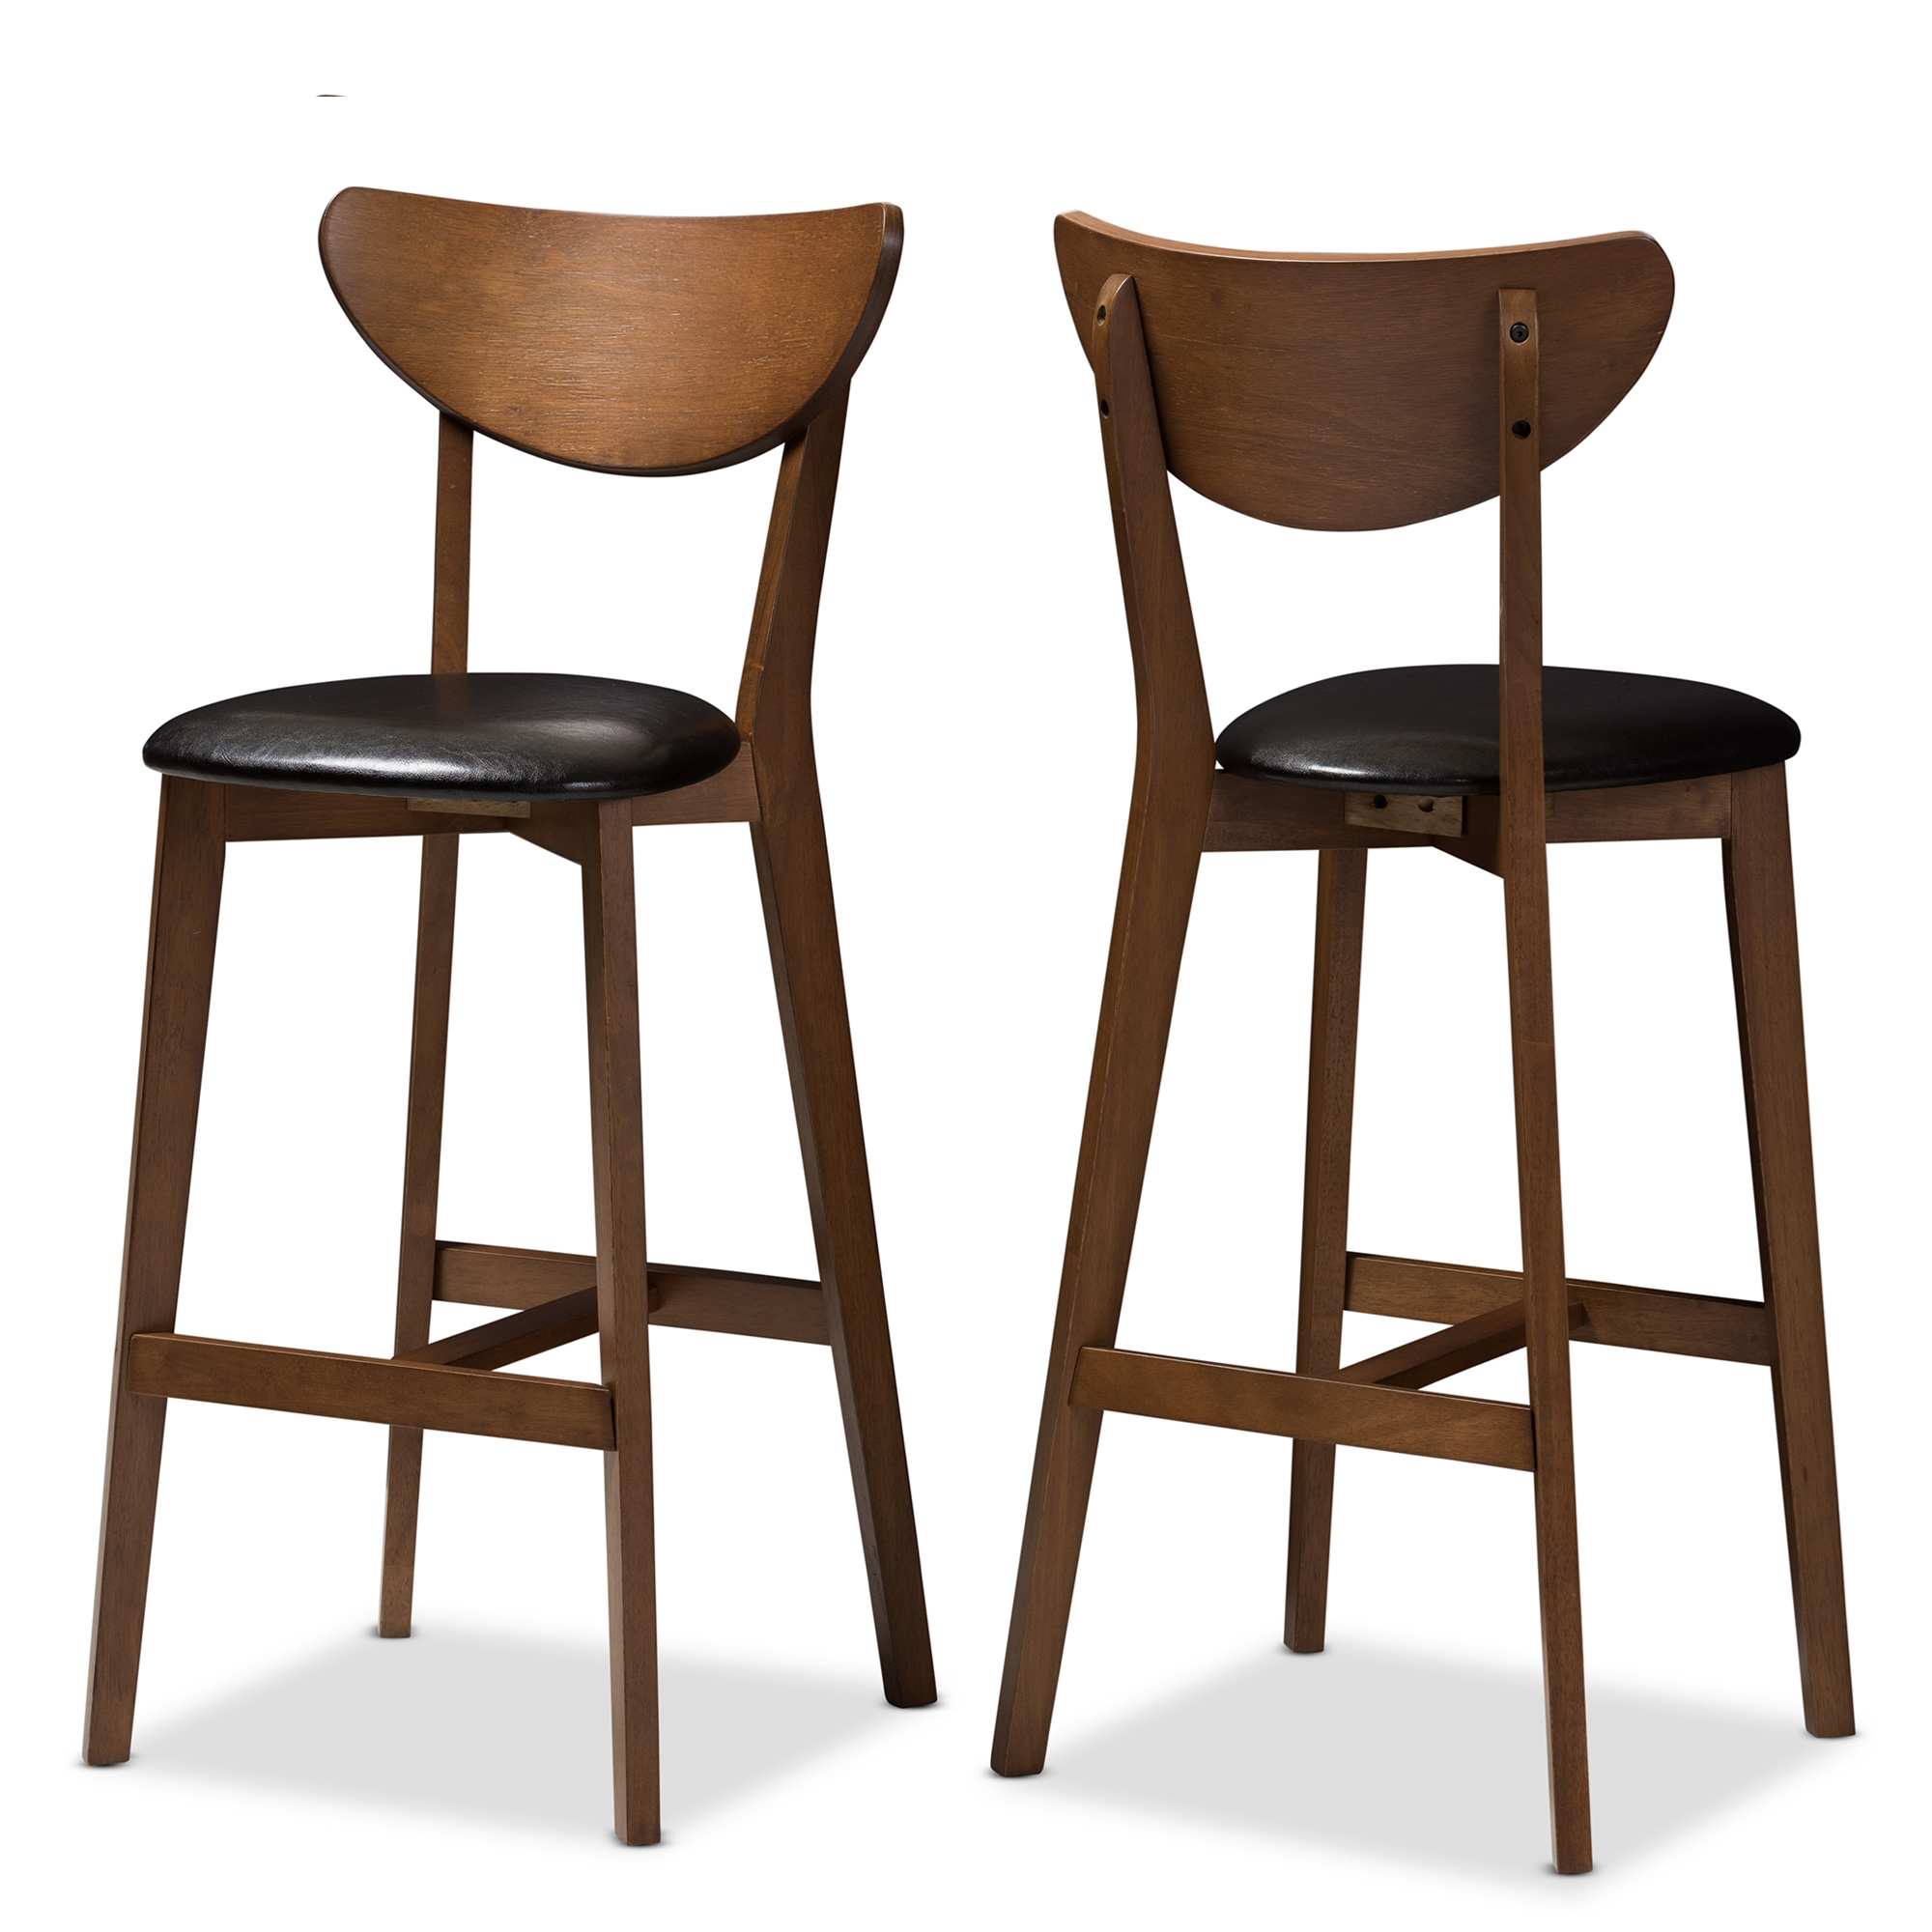 Wholesale Interiors Cognac Dark Brown Leather Bar Stool: Baxton Studio Eline Mid-Century Modern Black Faux Leather